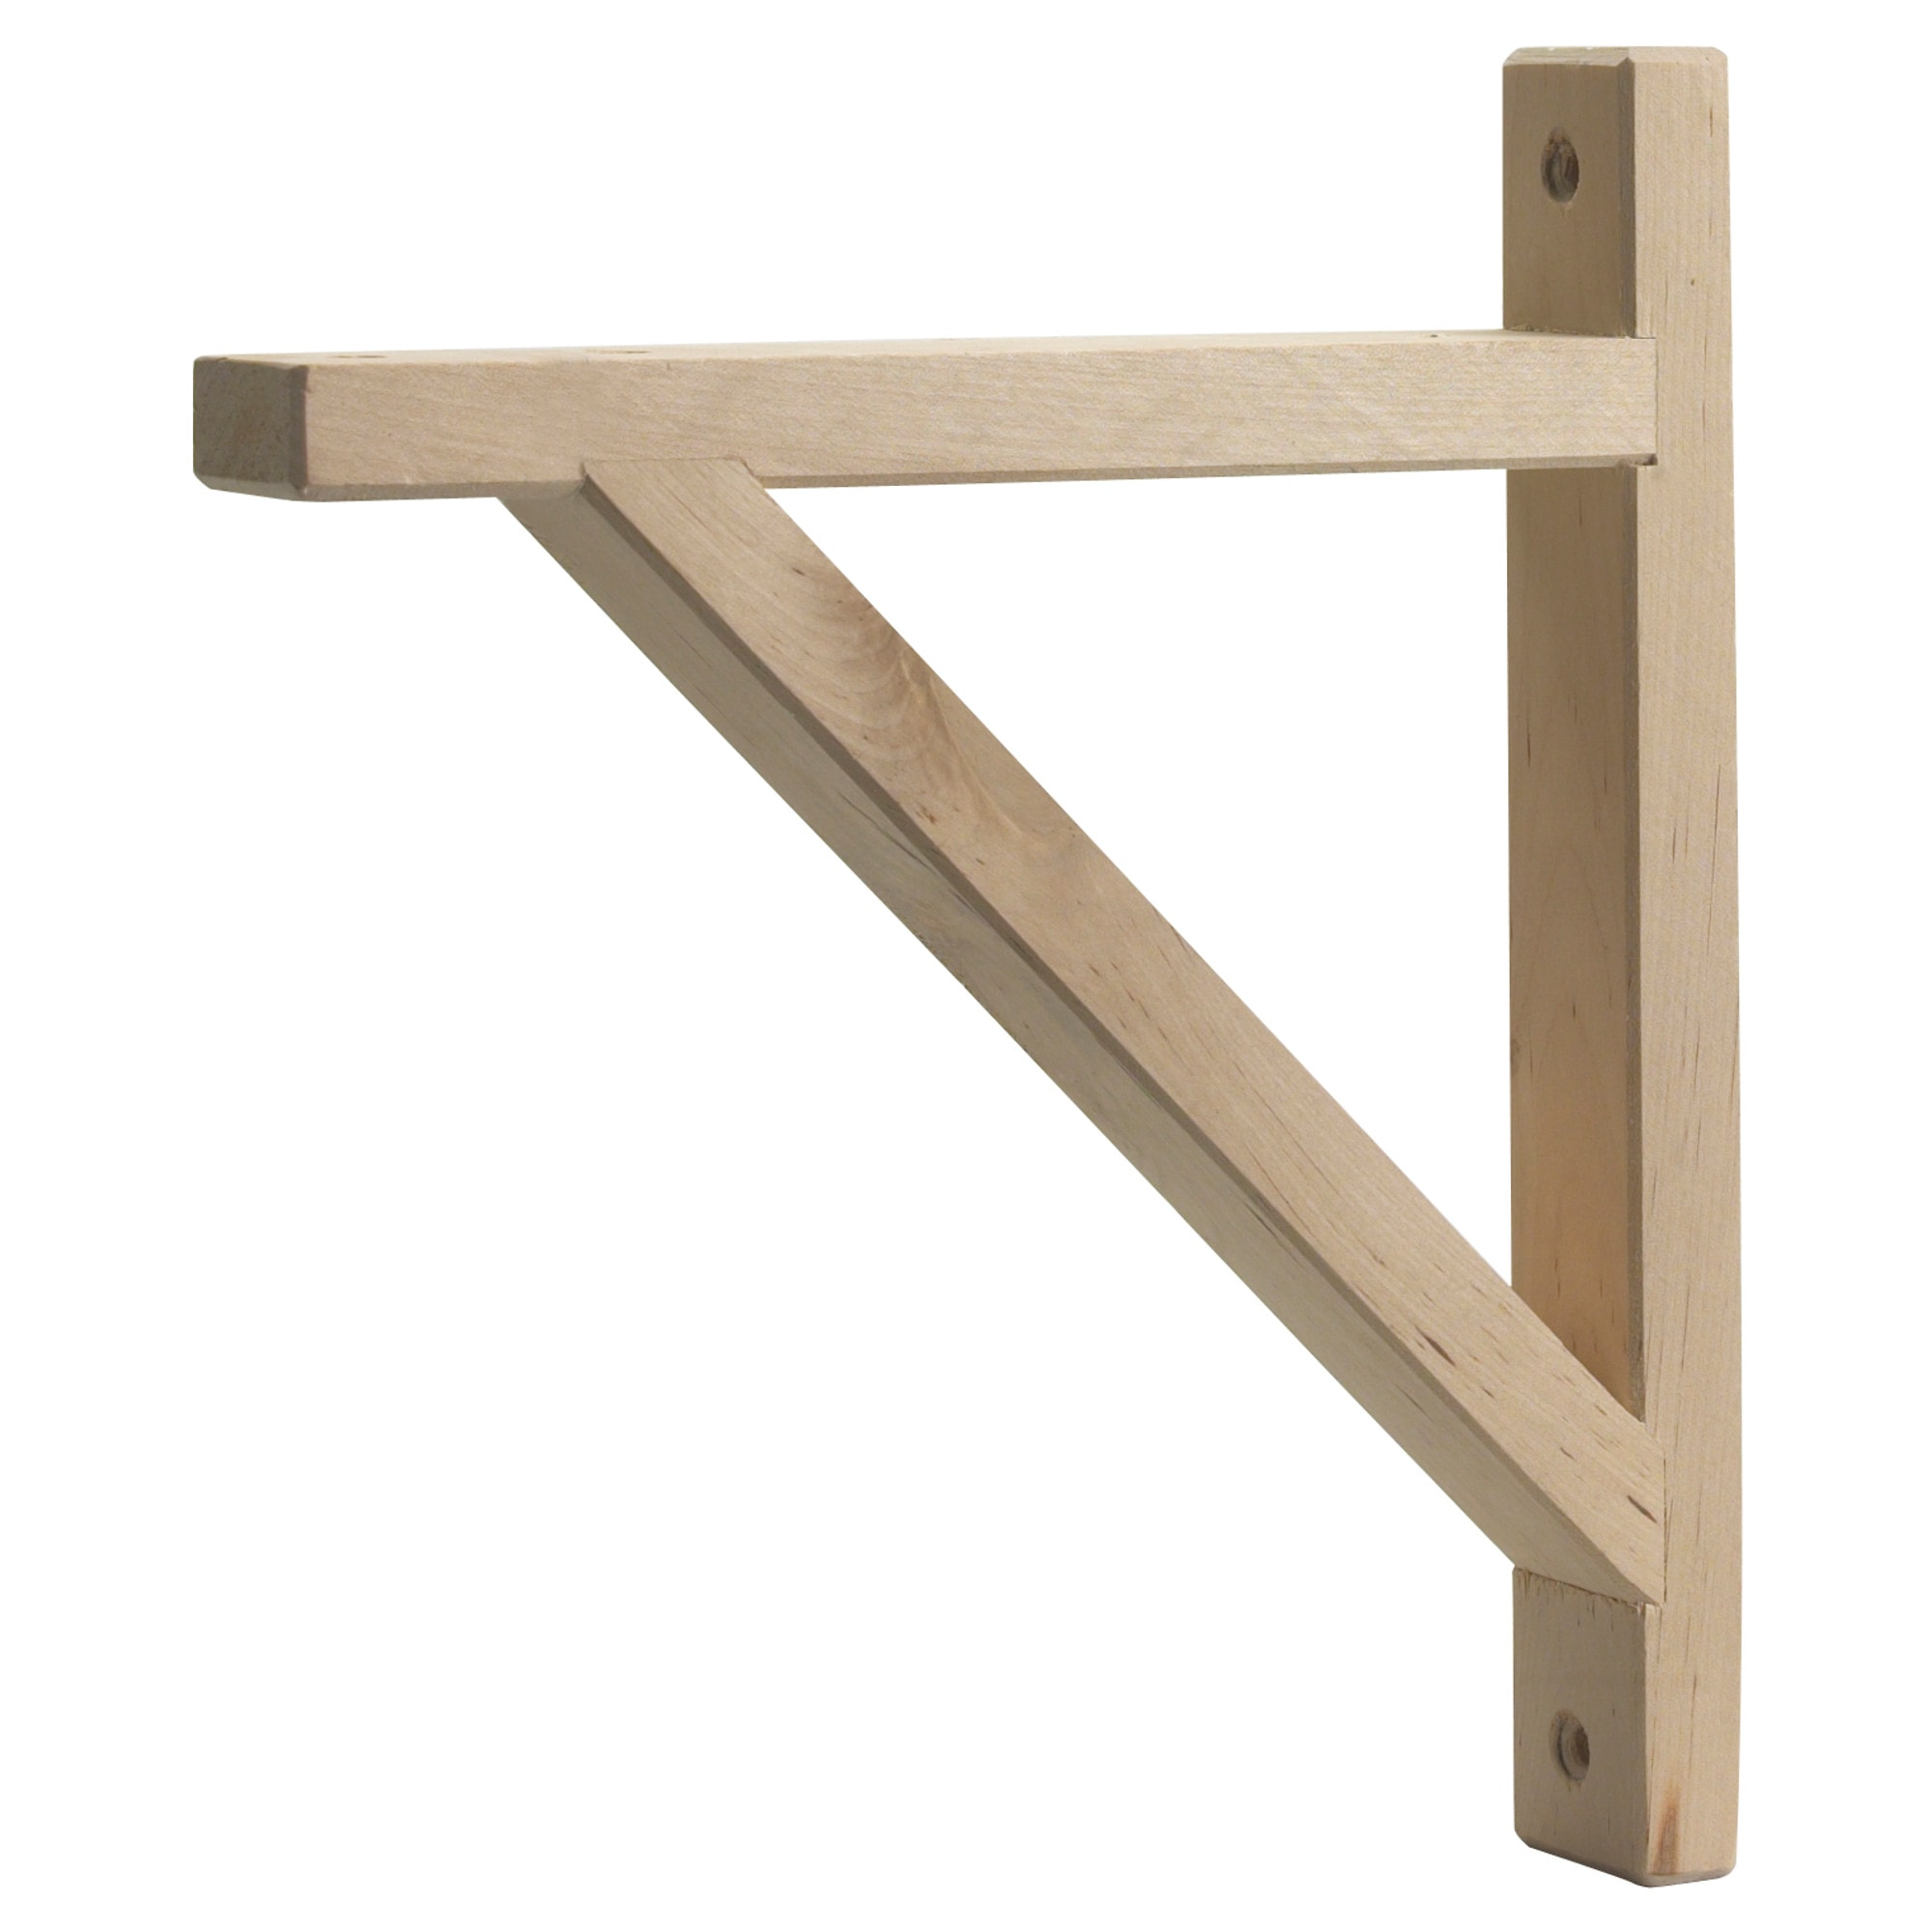 Shelf Brackets for Wall Shelves IKEA